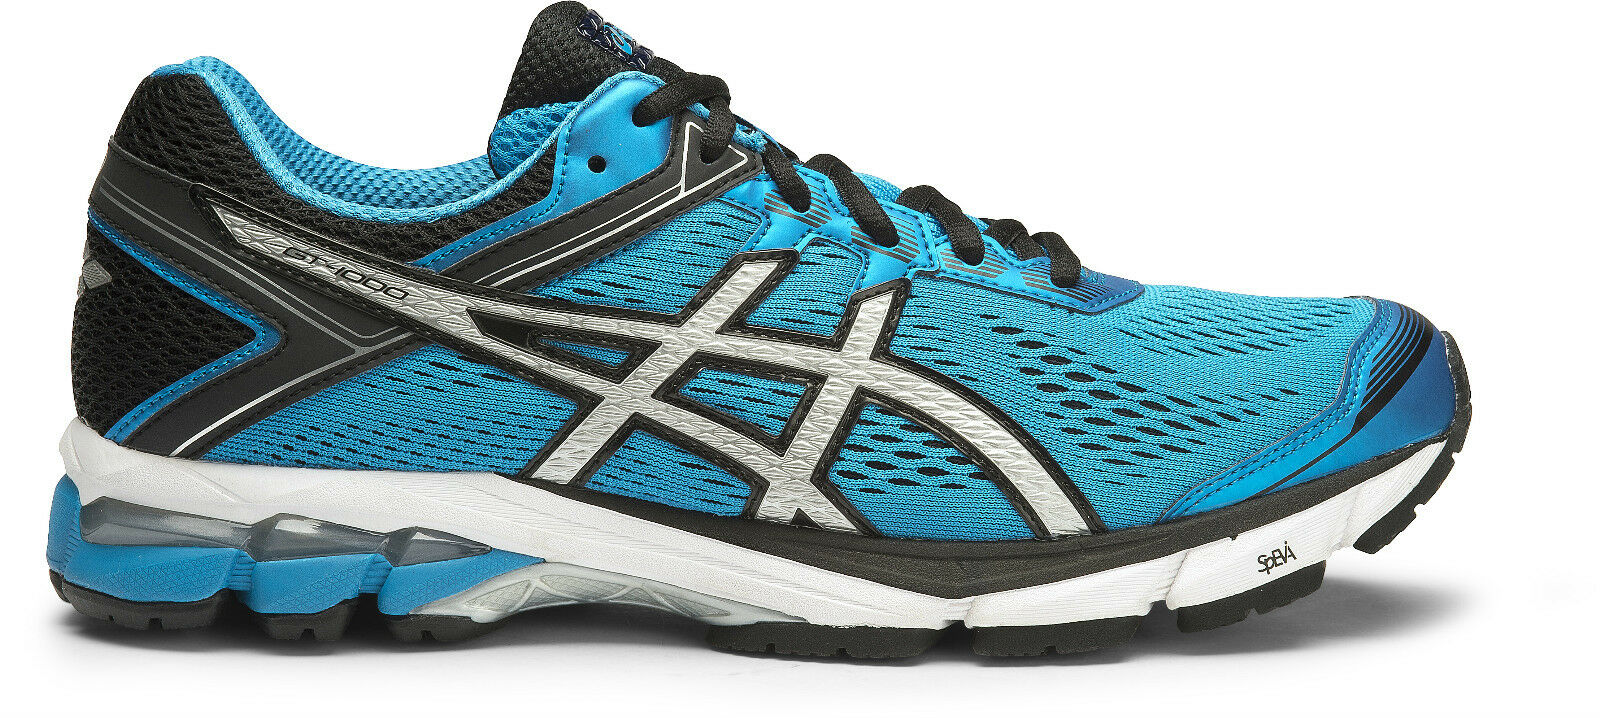 NEW  Asics GT 1000 4 Mens Running shoes (2E) (4293)